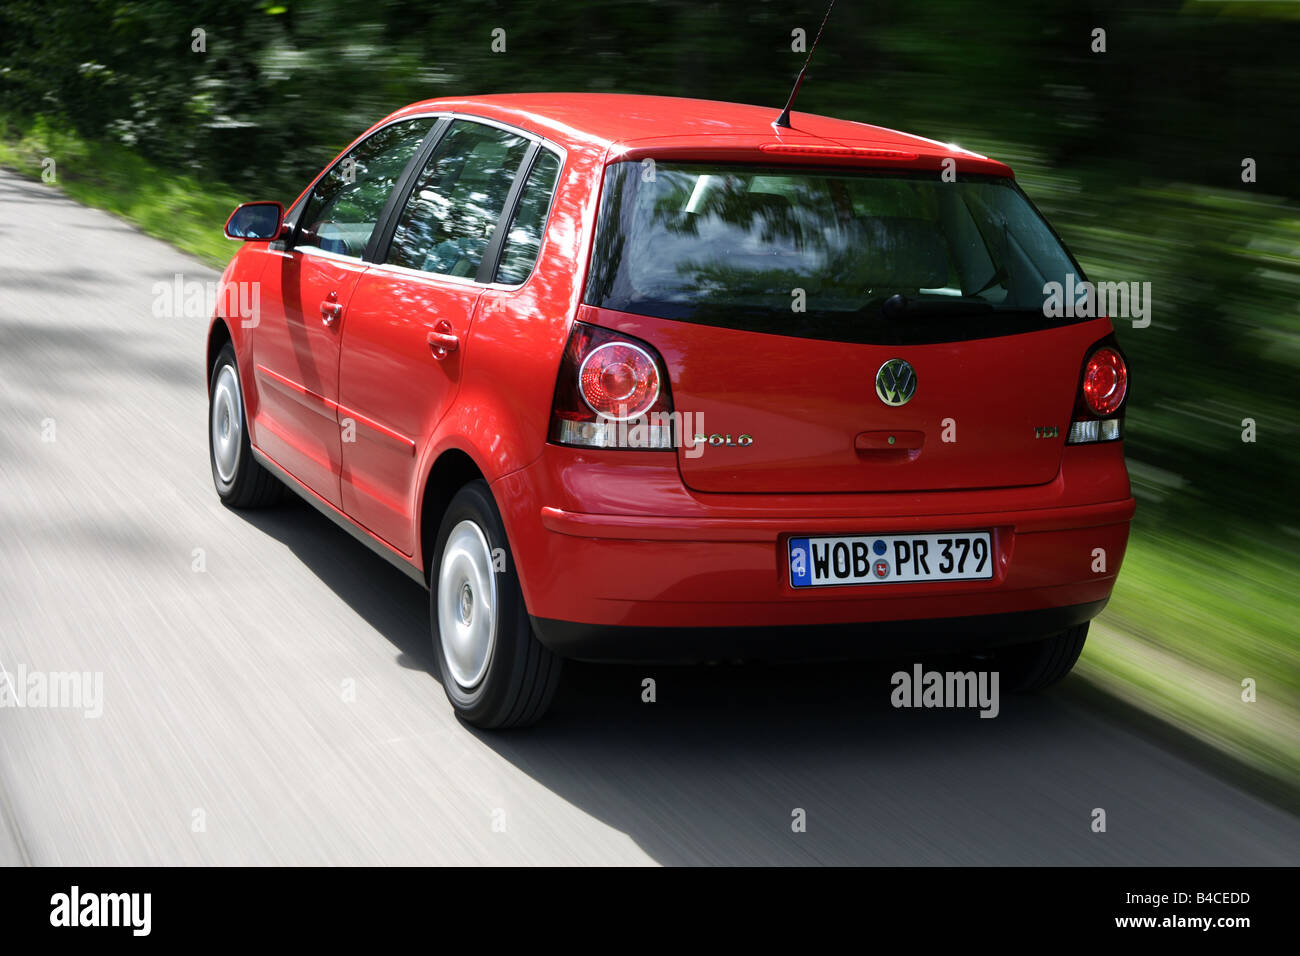 Car Vw Volkswagen Polo 1 4 Tdi Model Year 2005 Red